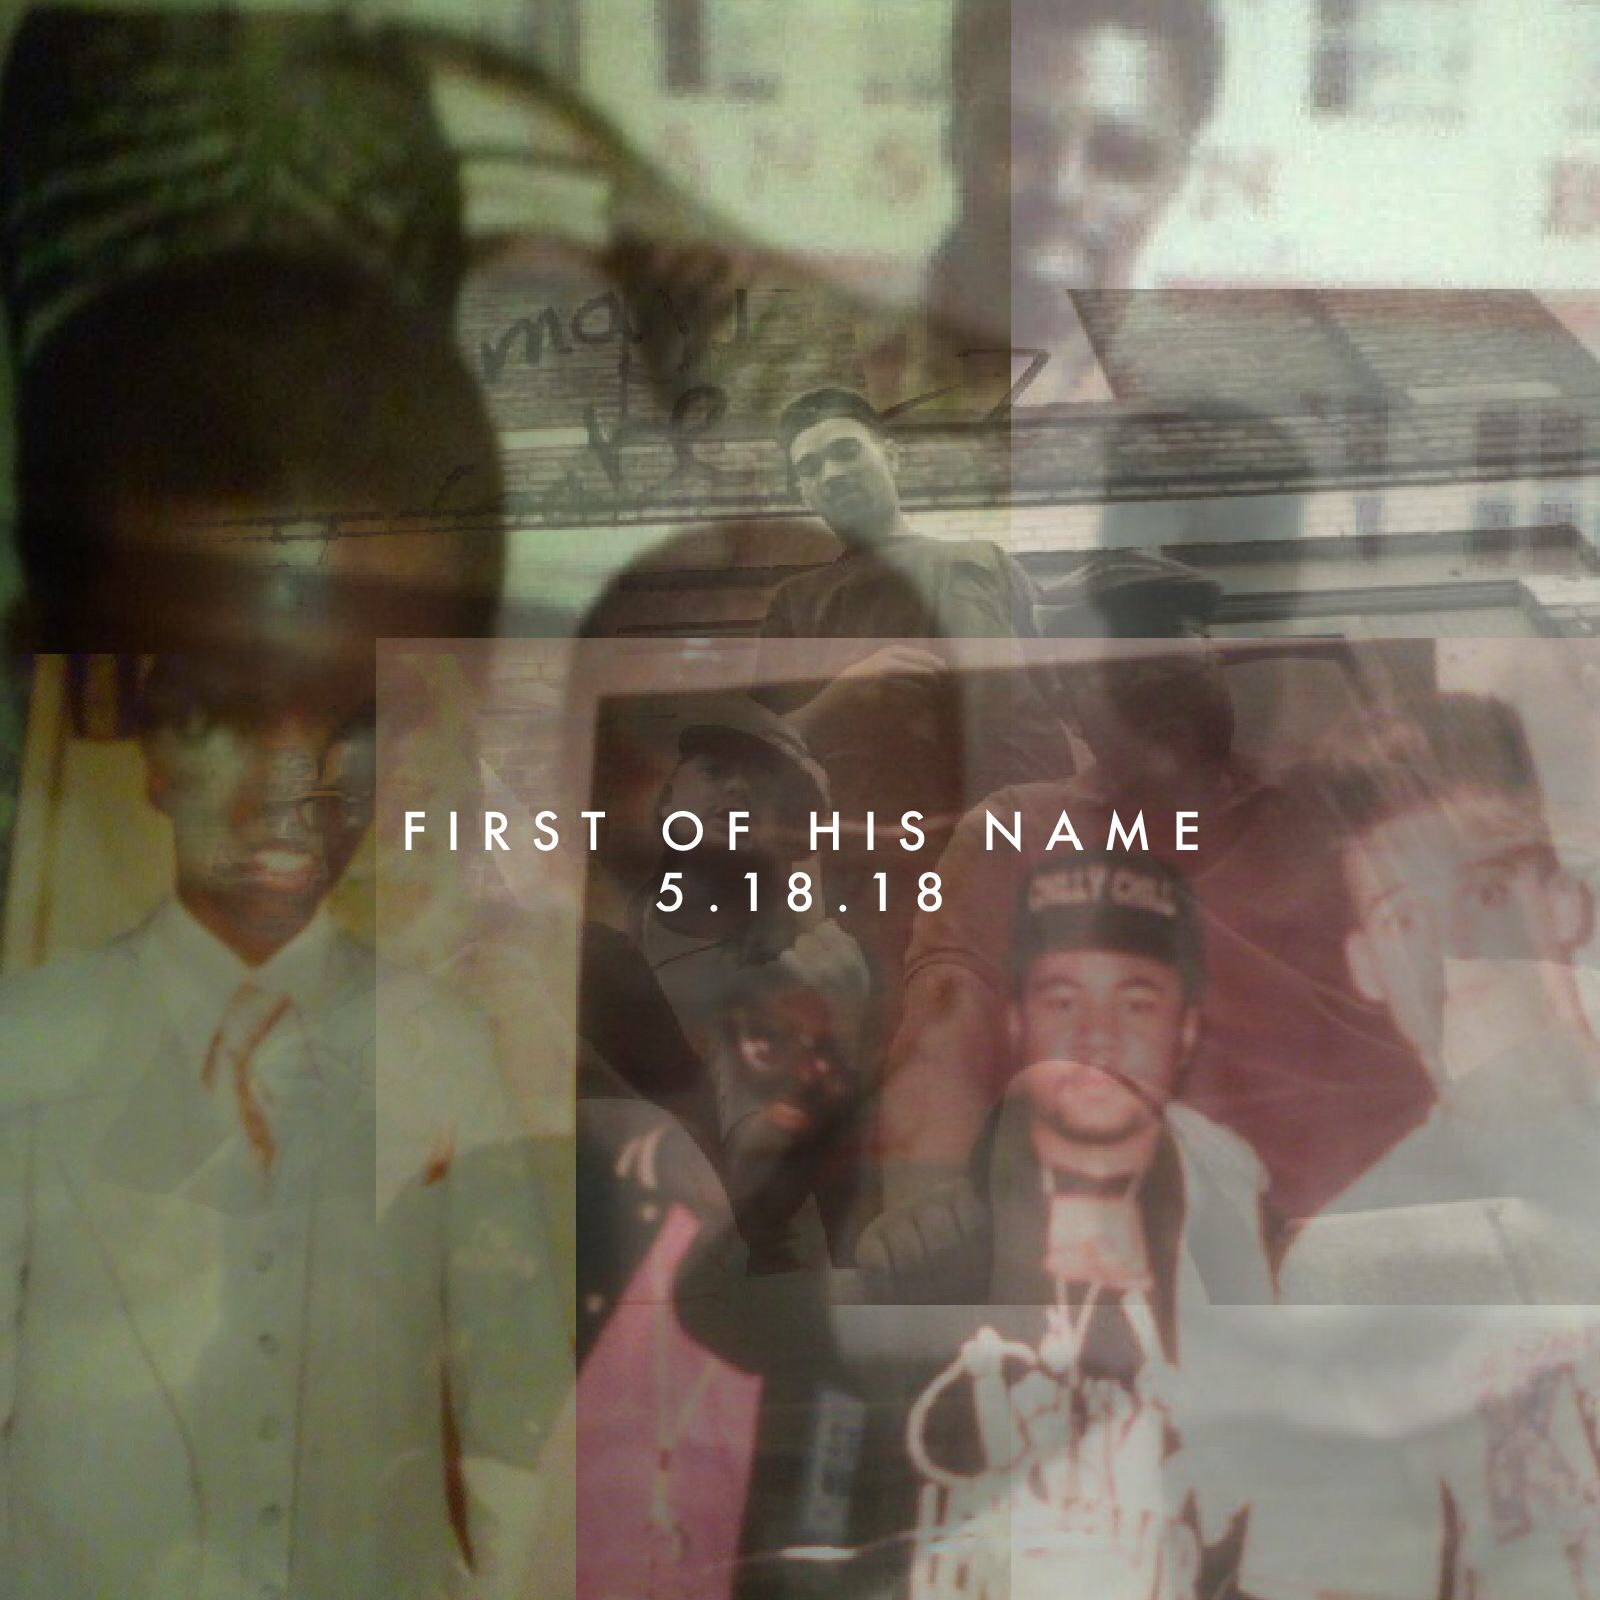 JHarry, returns with new album, FIRST OF HIS NAME on 5.18.18. Featuring production from him and Lord Favver. Also there will be exclusive tracks from the album on THE CORNER®️ .  head to gettothecorner.com/music to stream it on 5.18.18